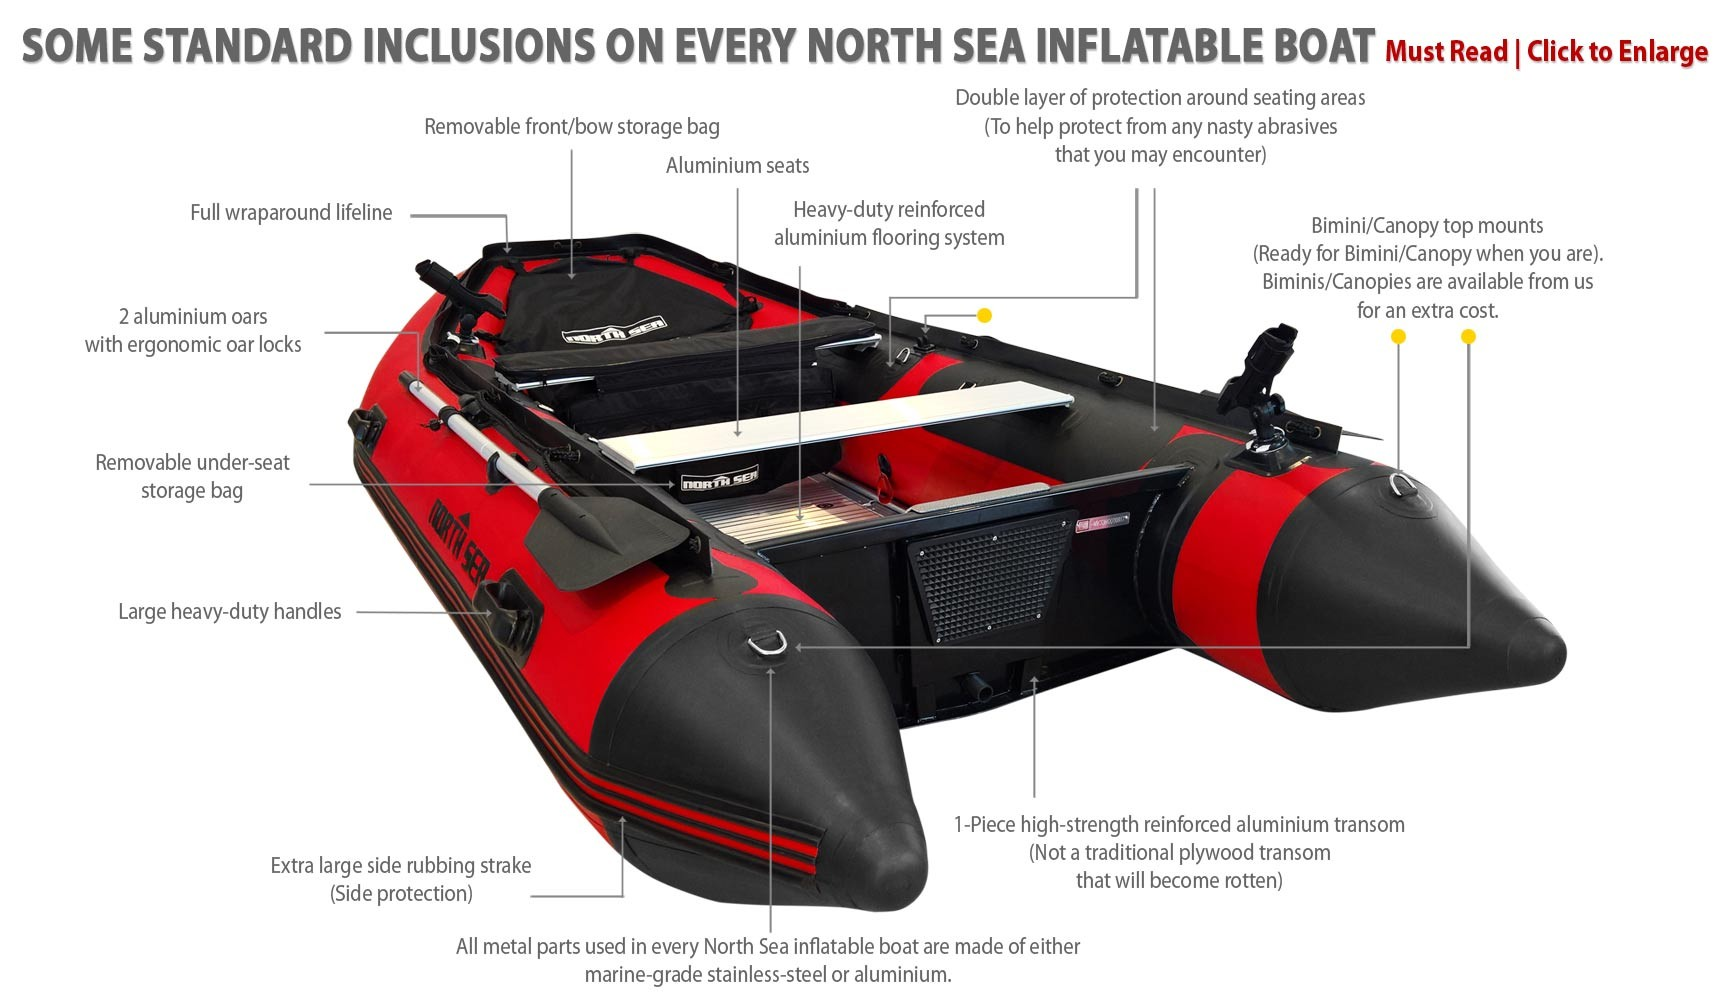 Standard Inclusions on North Sea Inflatable Boats